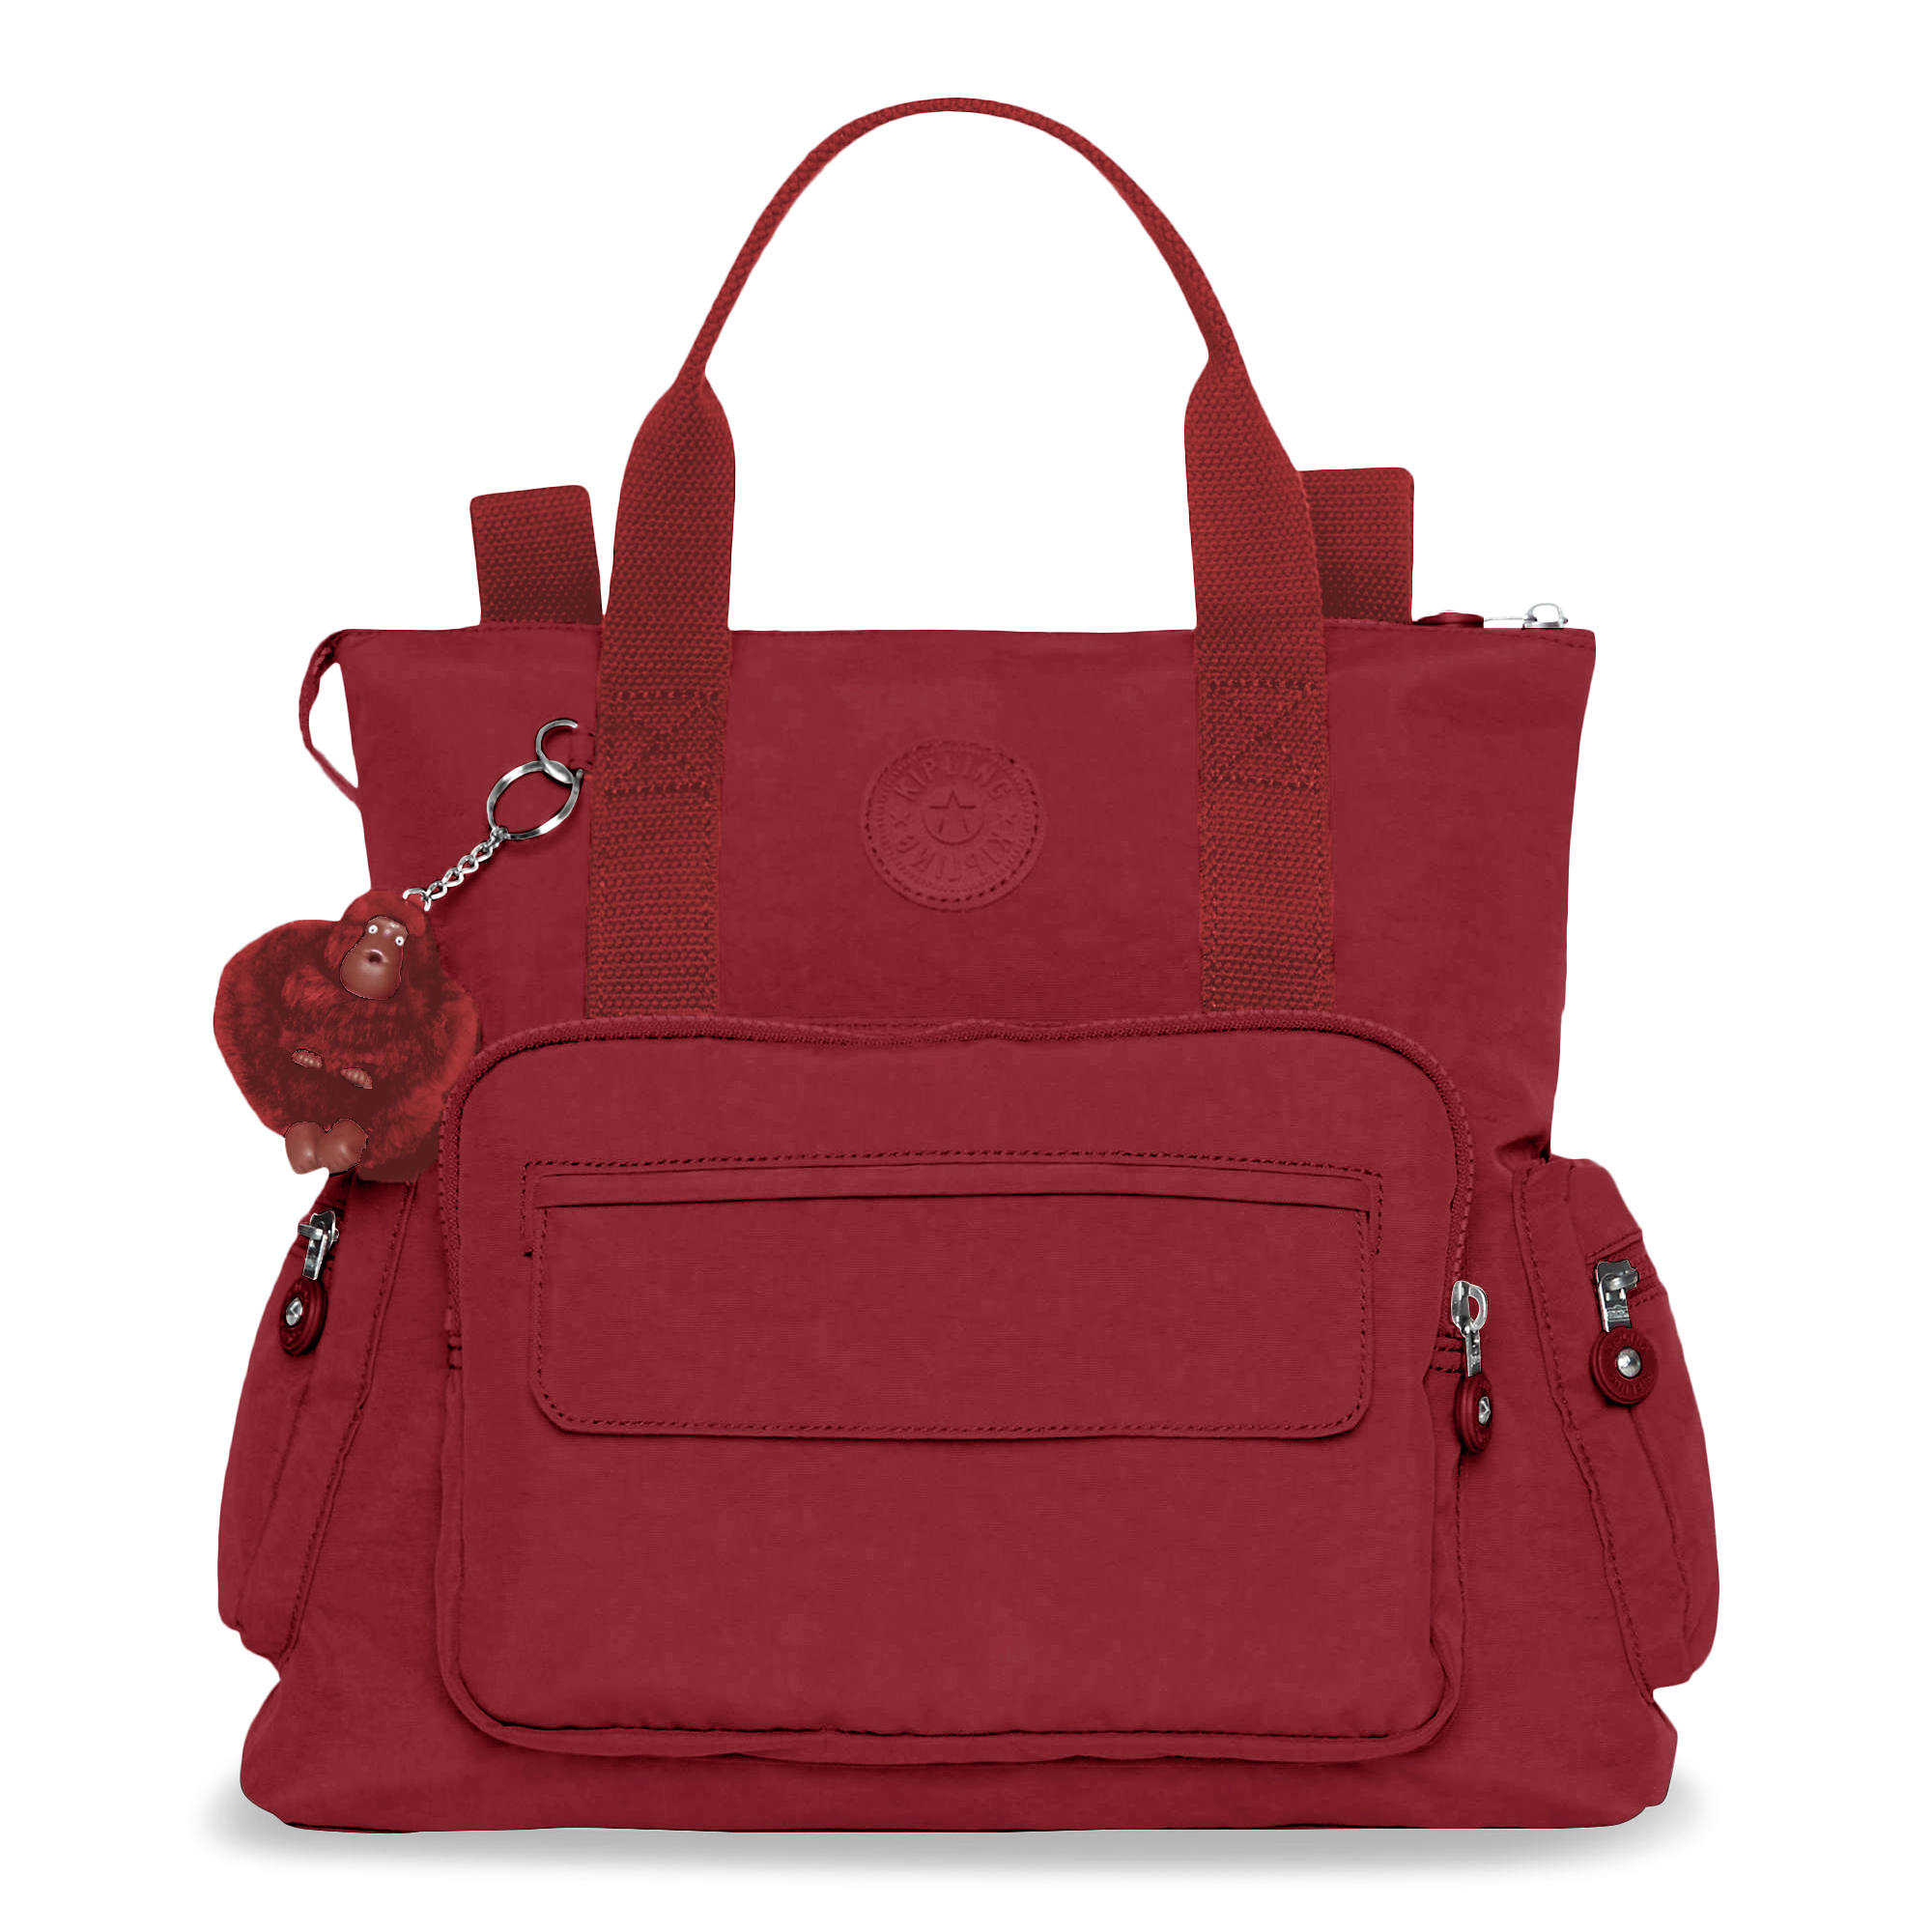 Alvy 2 In 1 Convertible Tote Bag Backpack Brick Red Large